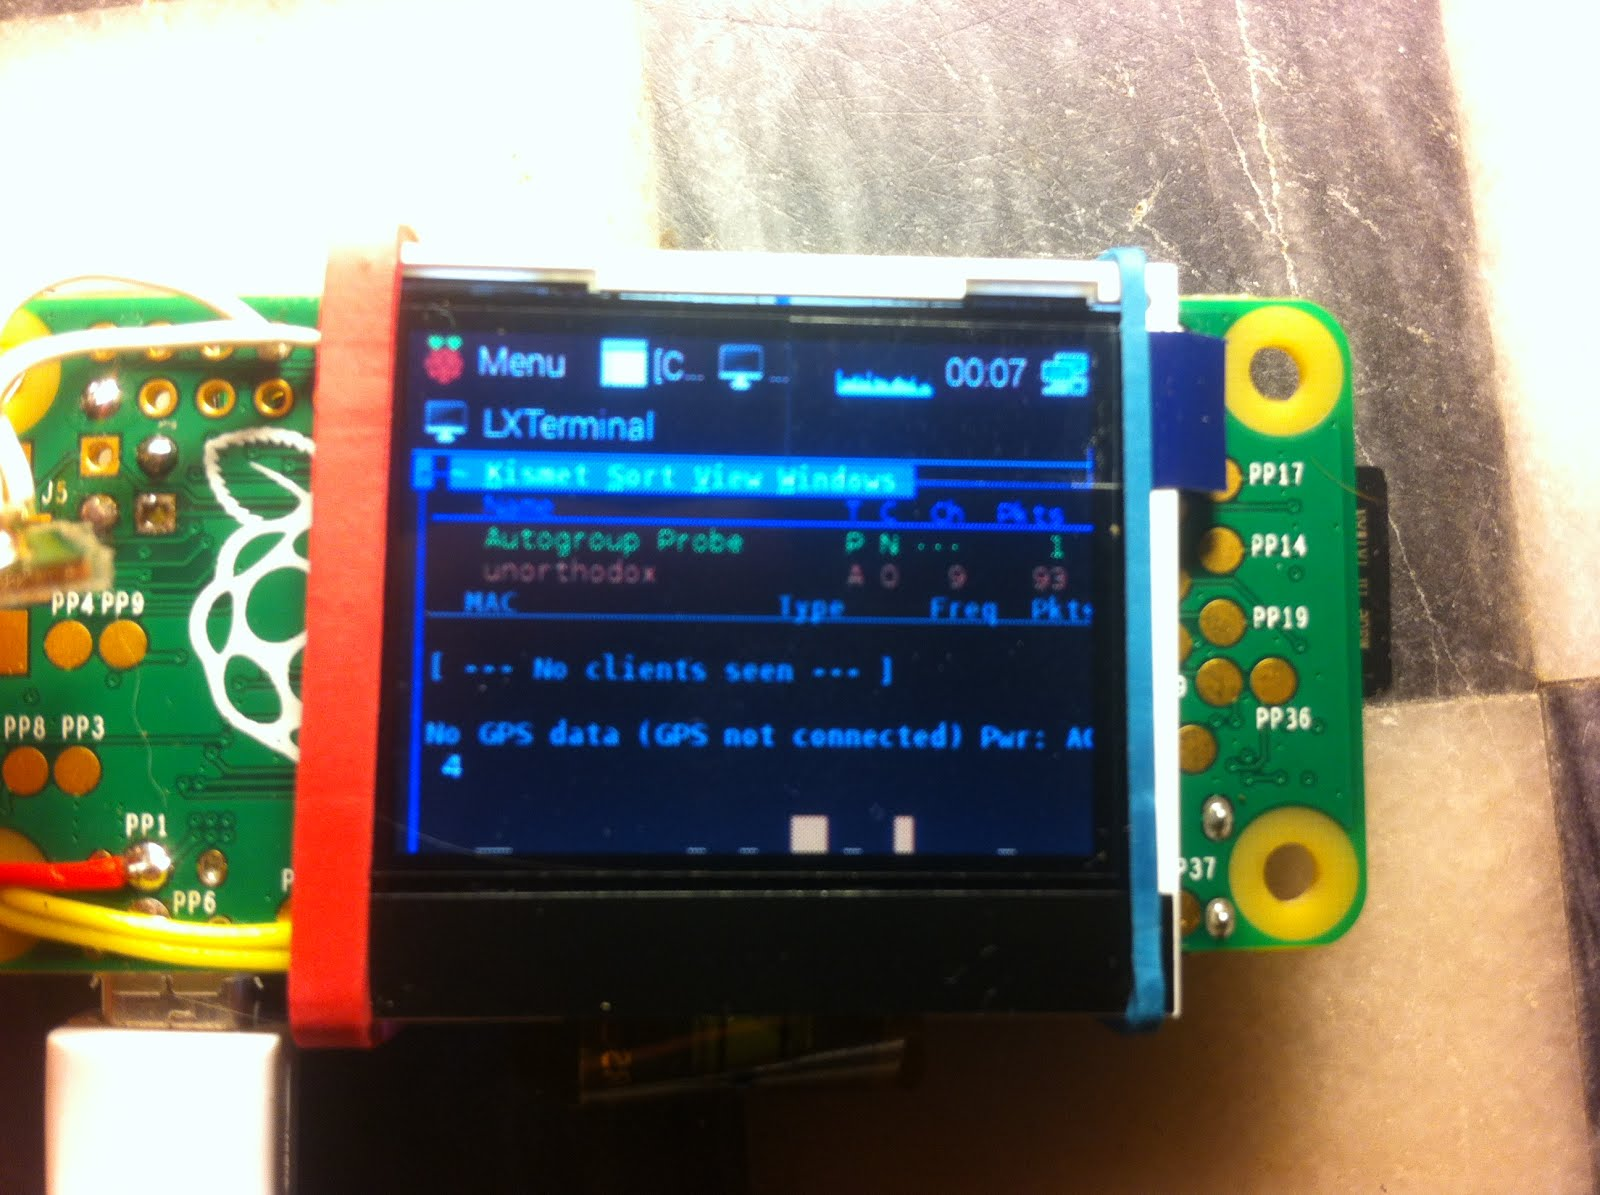 Raspberry Pi Gps Display